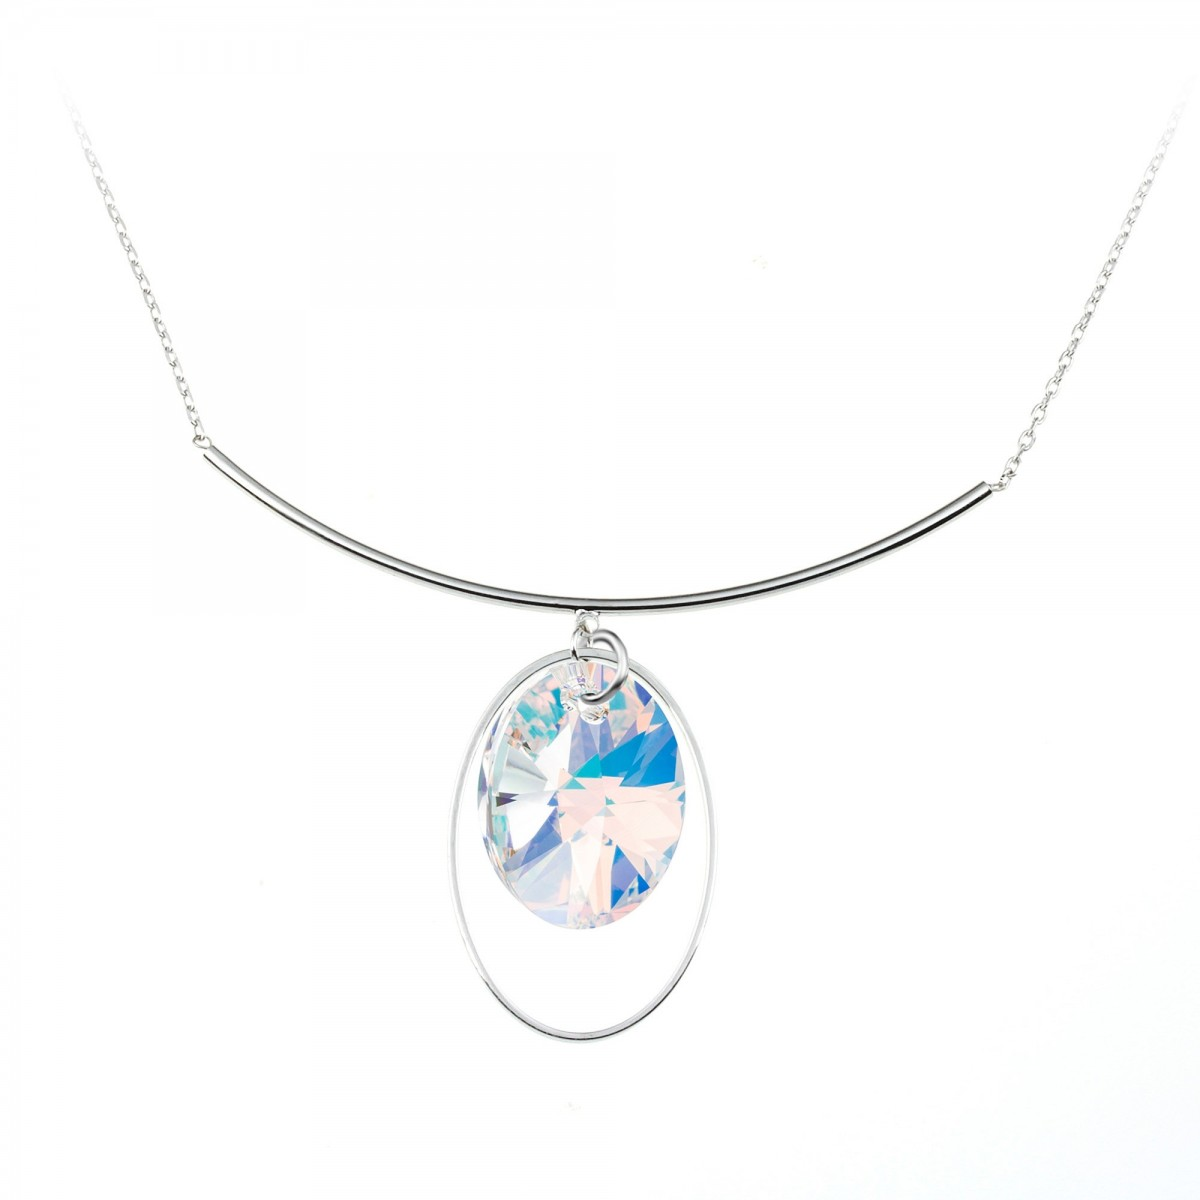 Collier argenté So Charm made with crystals from Swarovski irisé